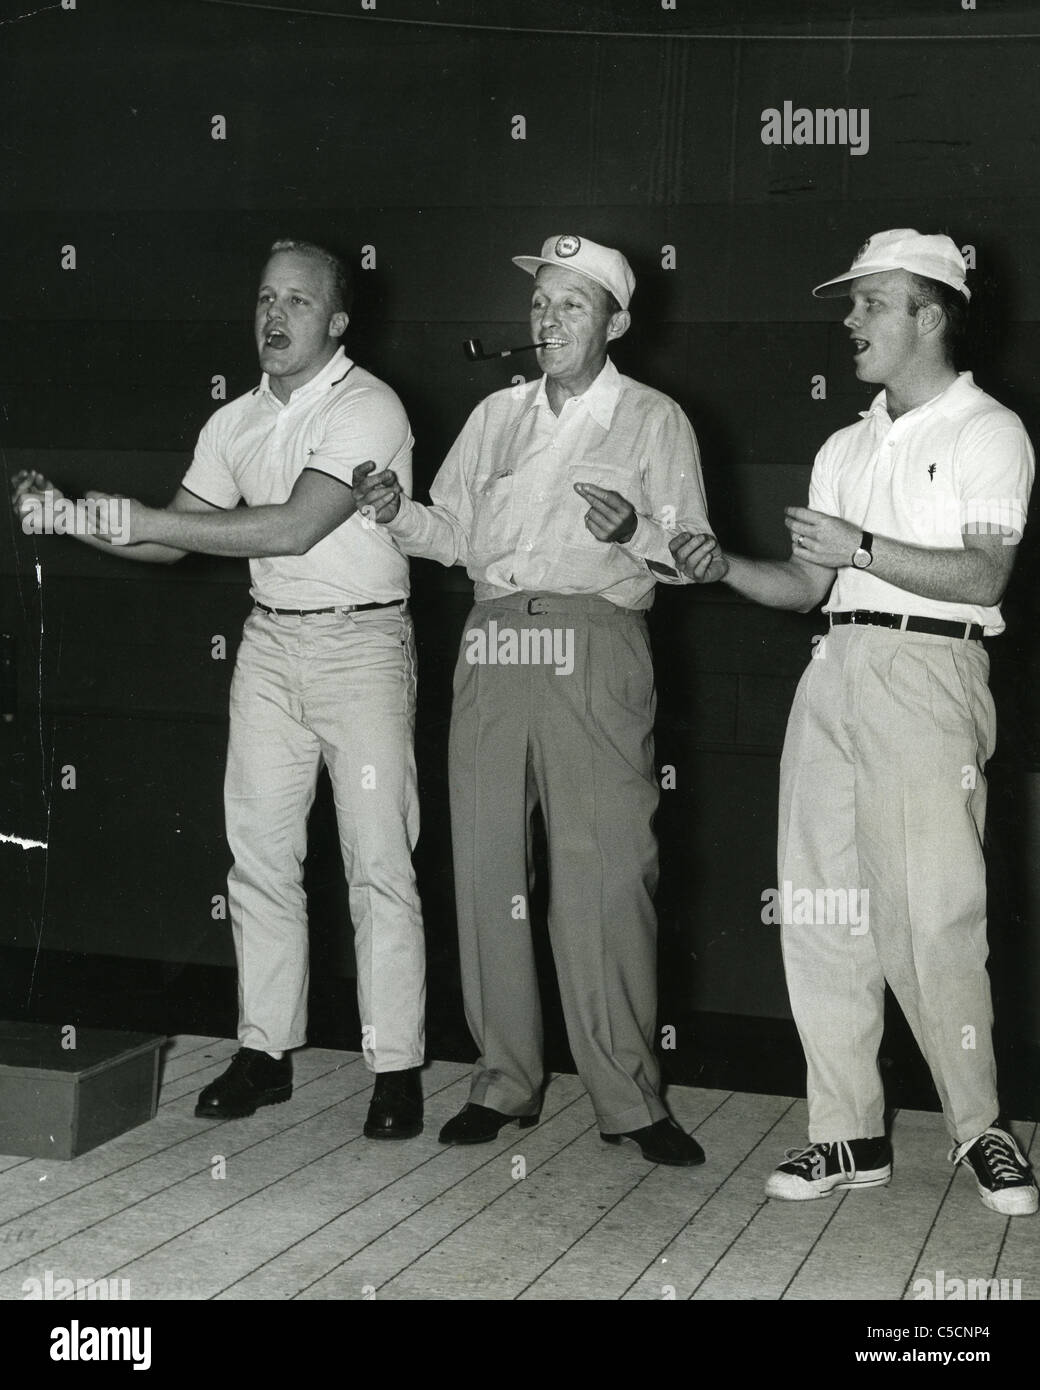 BING CROSBY reahersing routine with sons Dennis and Phillip for his TV show - Stock Image